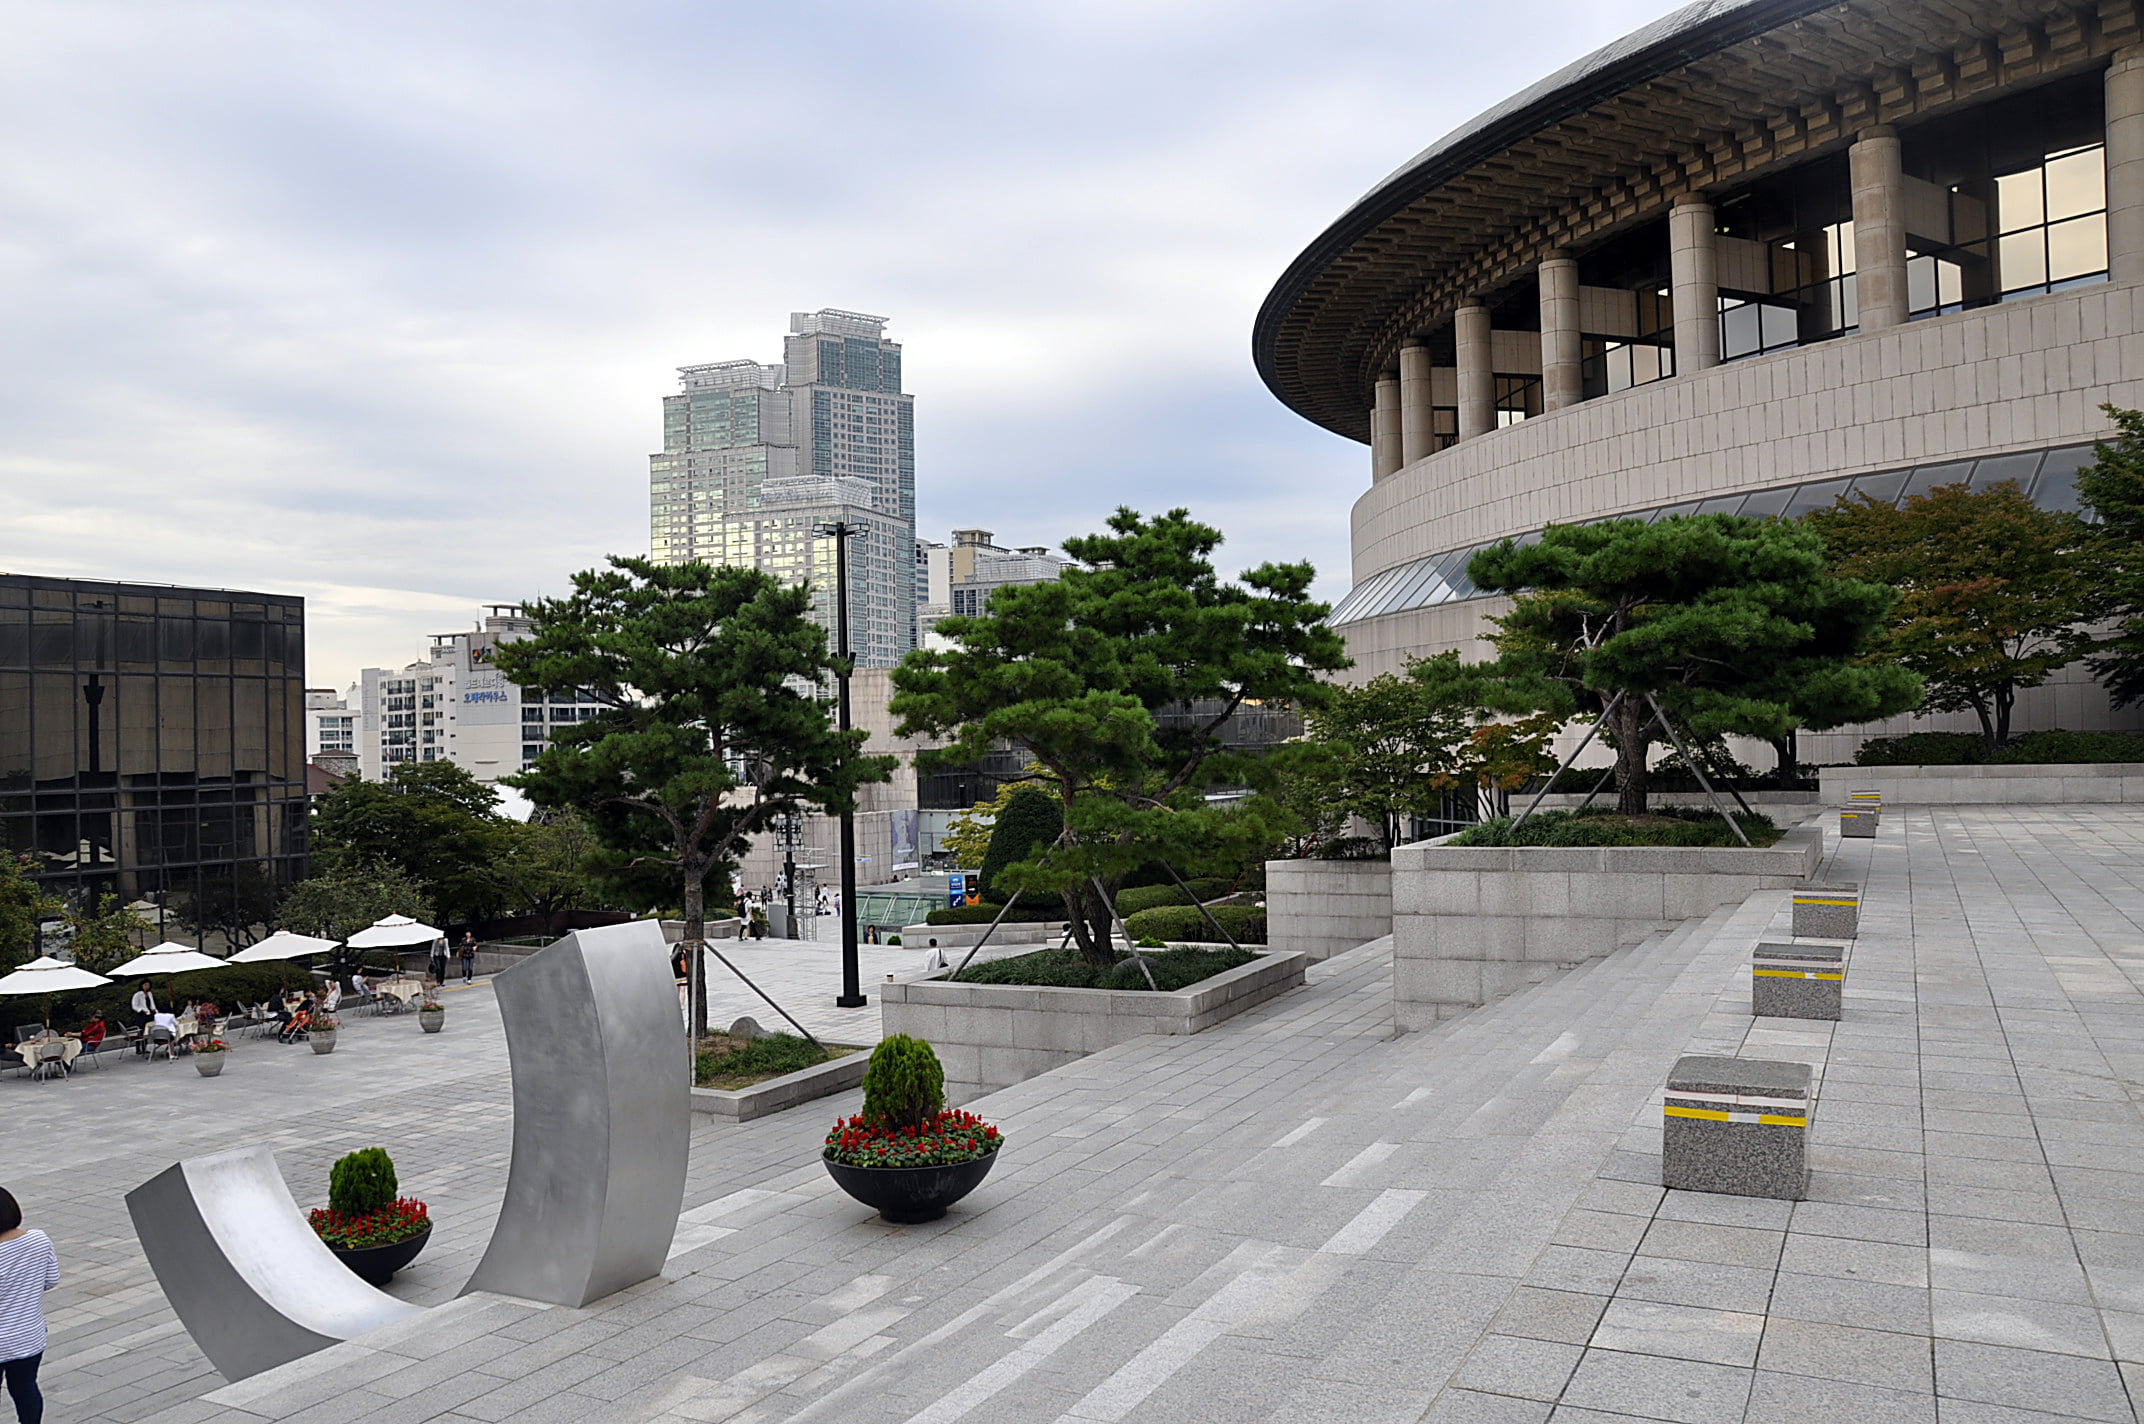 Seoul Arts Center (Pusat Kesenian Seoul)